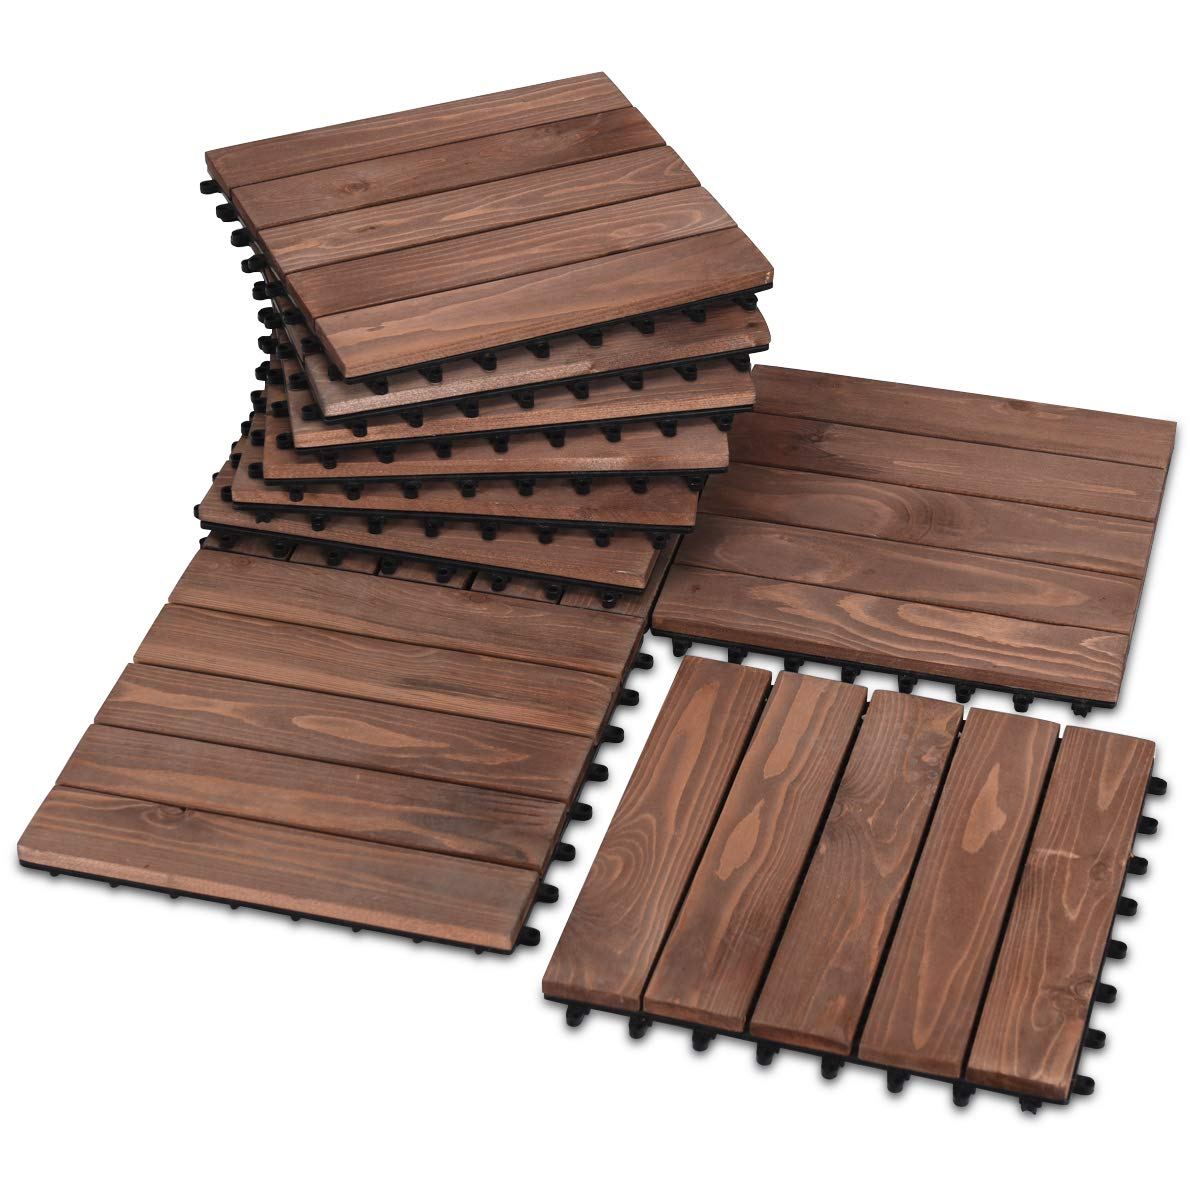 Giantex 11 Pcs Floor Tiles Interlocking Wood Deck Tiles Patio Pavers Indoor and Outdoor Flooring Decking Tiles Stripe and Check Pattern, 12 X12 Inches